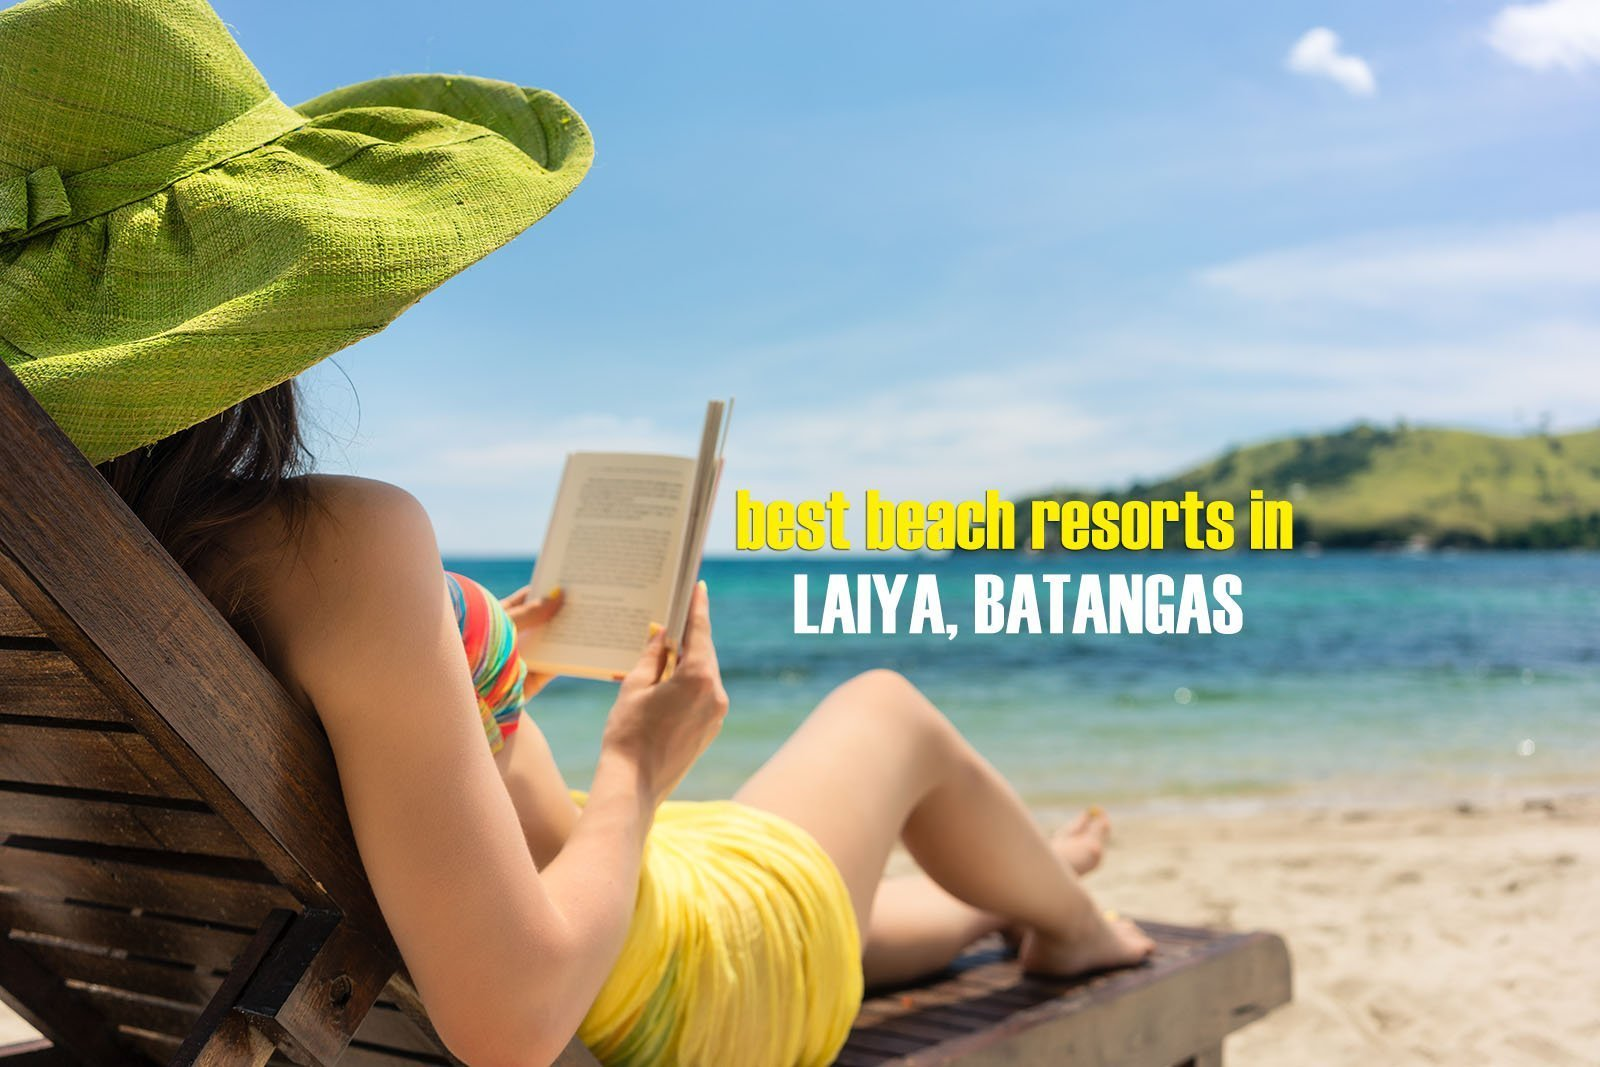 5 Best Beach Resorts in Laiya, Batangas